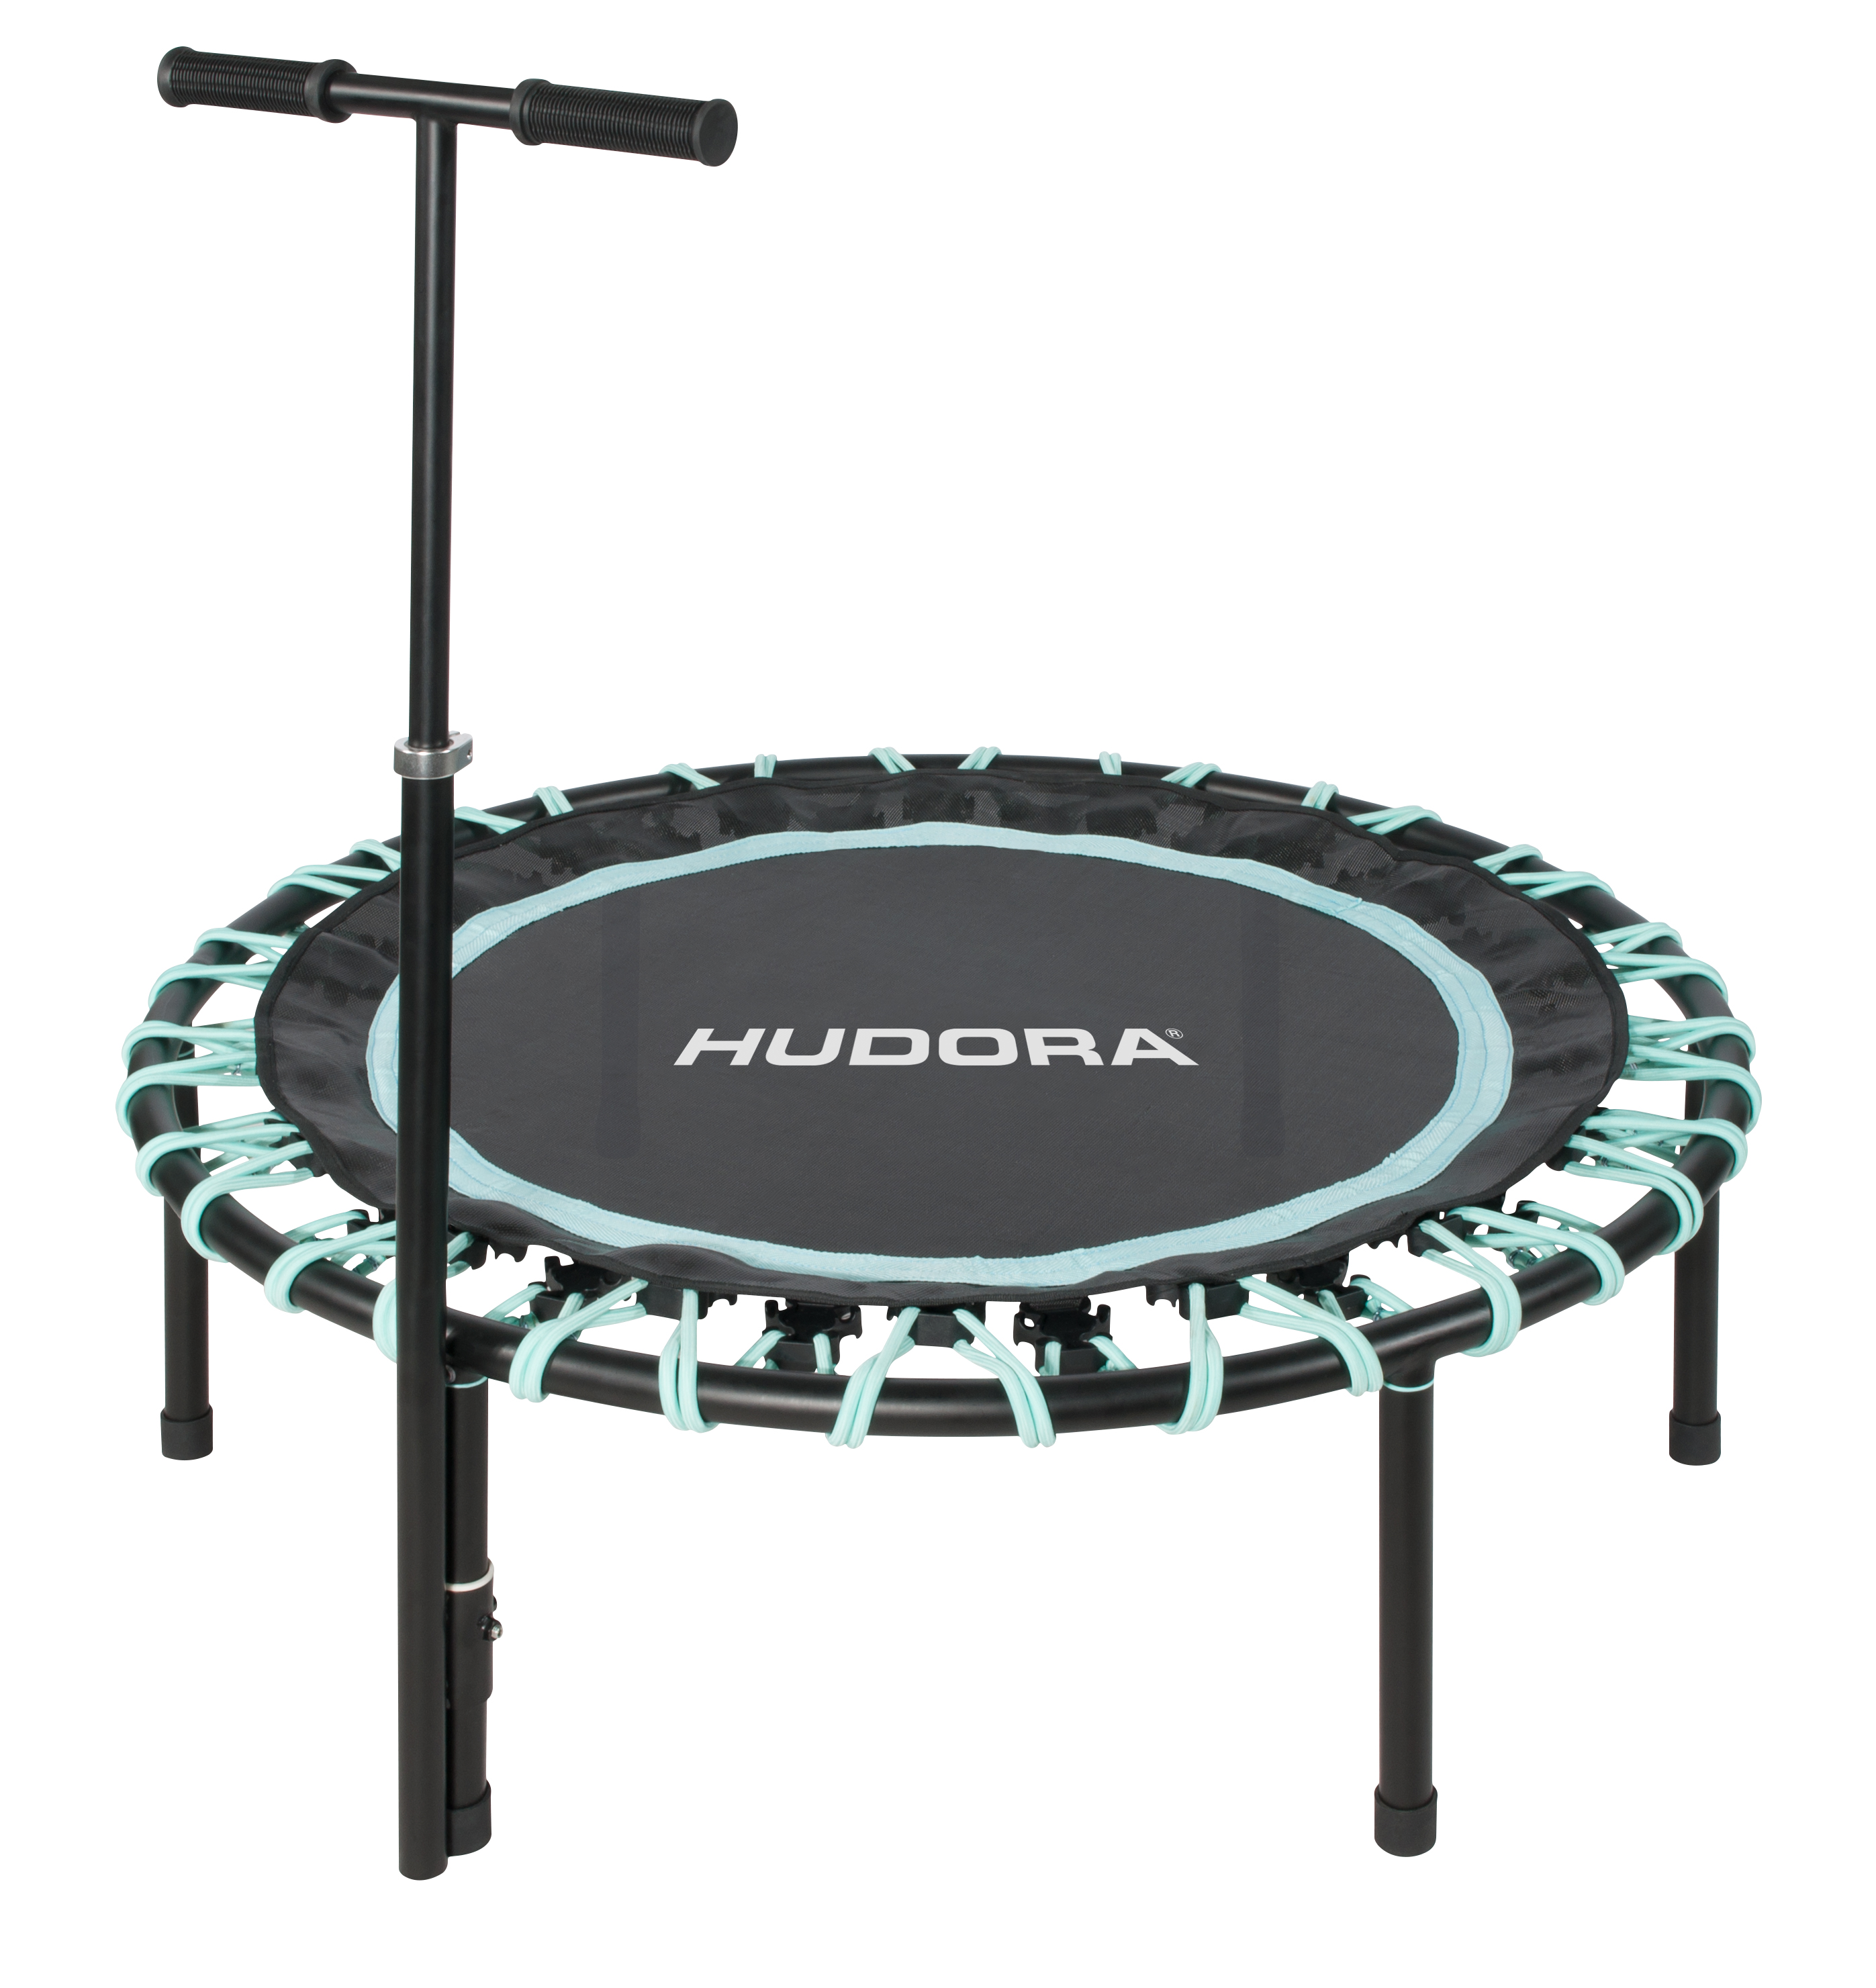 hudora trampolin sky 110 hudora. Black Bedroom Furniture Sets. Home Design Ideas